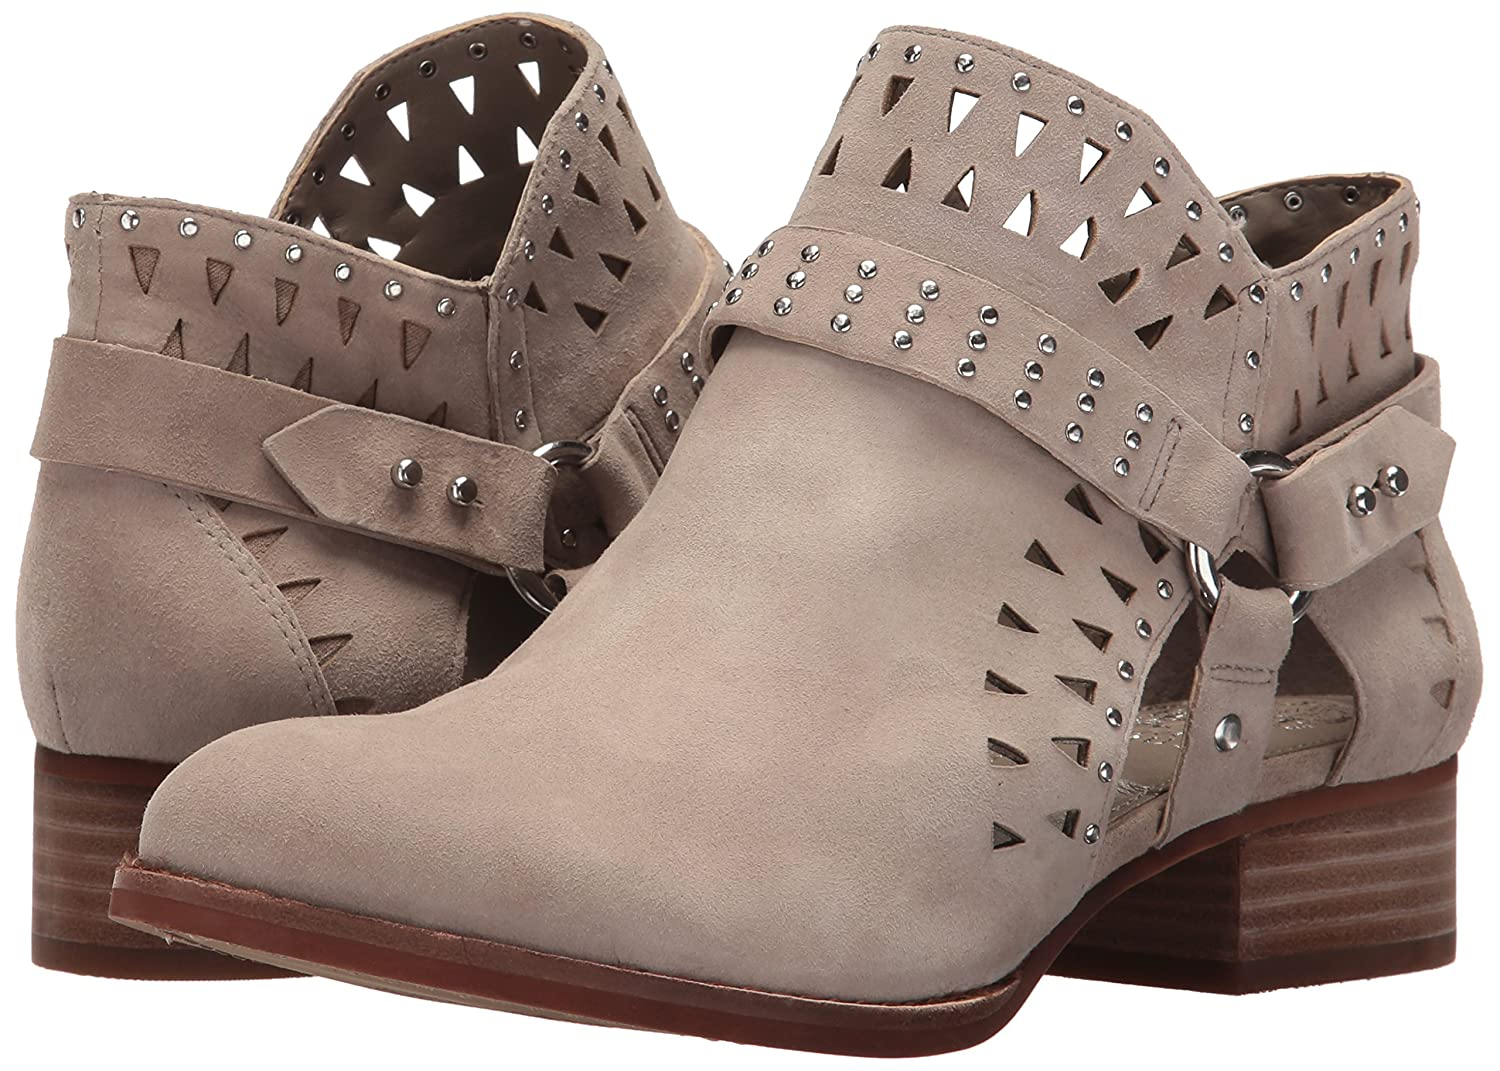 Vince Camuto Women's Calley Ankle Boot B01N4NLVNF 6.5 B(M) US|London Fog